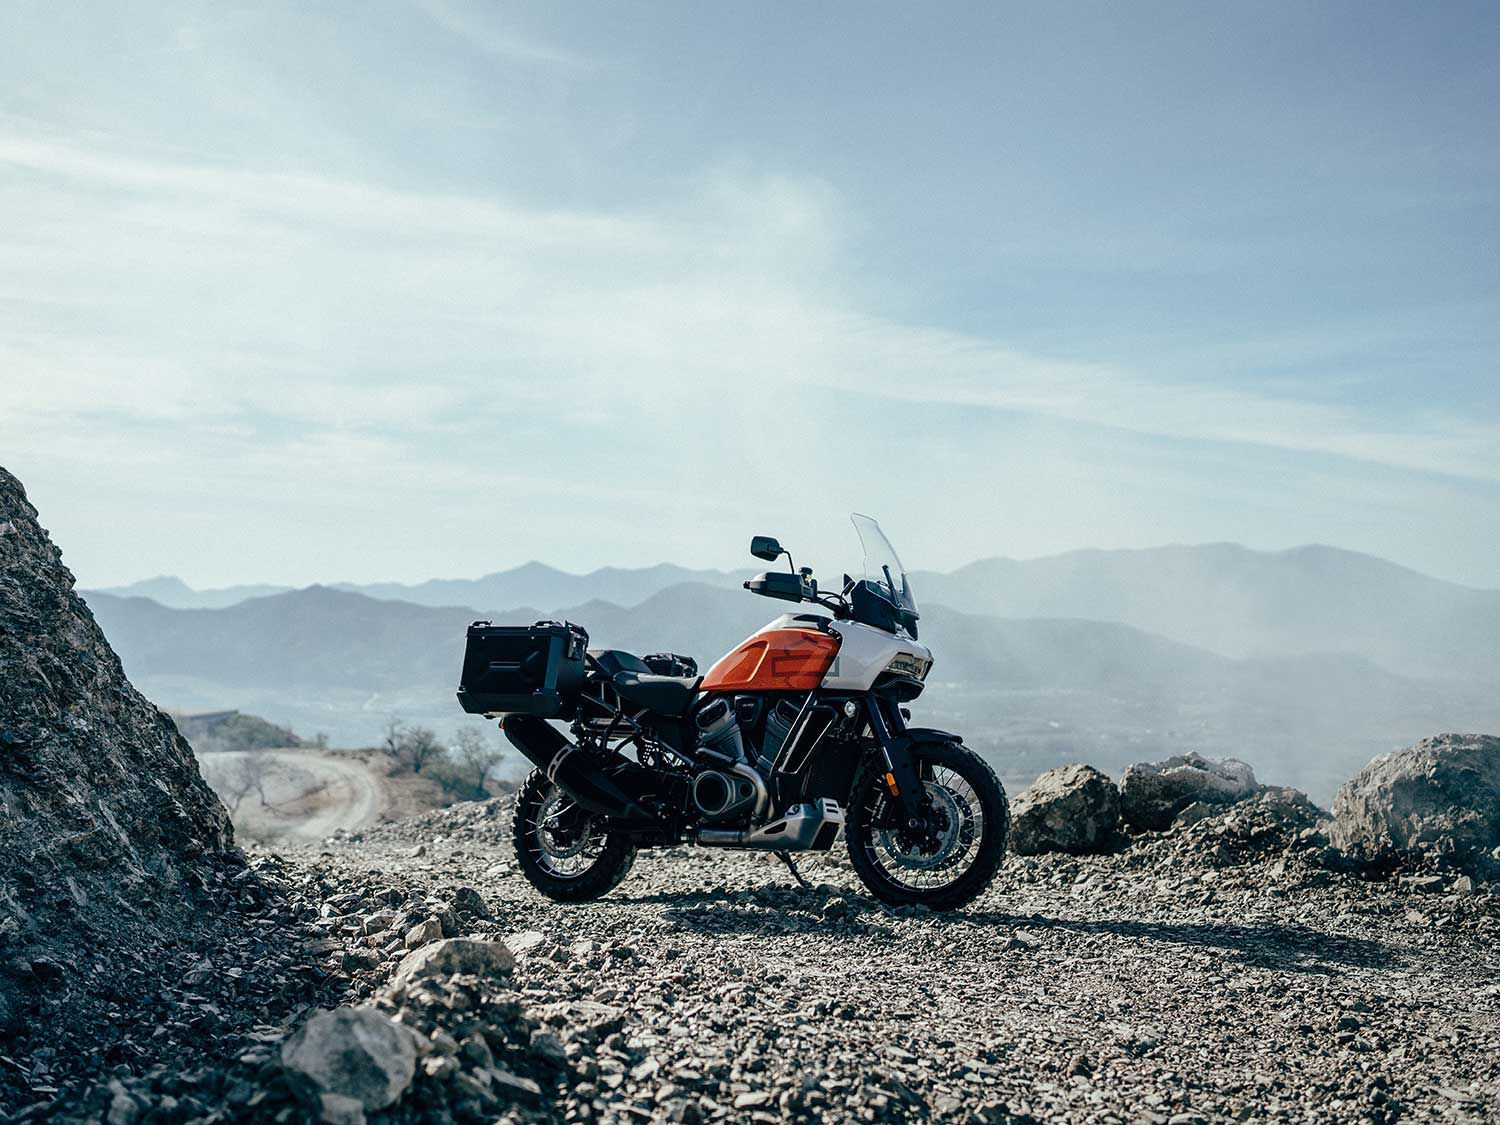 <h2>2021 Harley-Davidson Pan America</h2> </br> Talk about bringing the brand into another category, the 2021 Pan America is Harley-Davidson's adventure-touring model, and is set to launch late 2020.